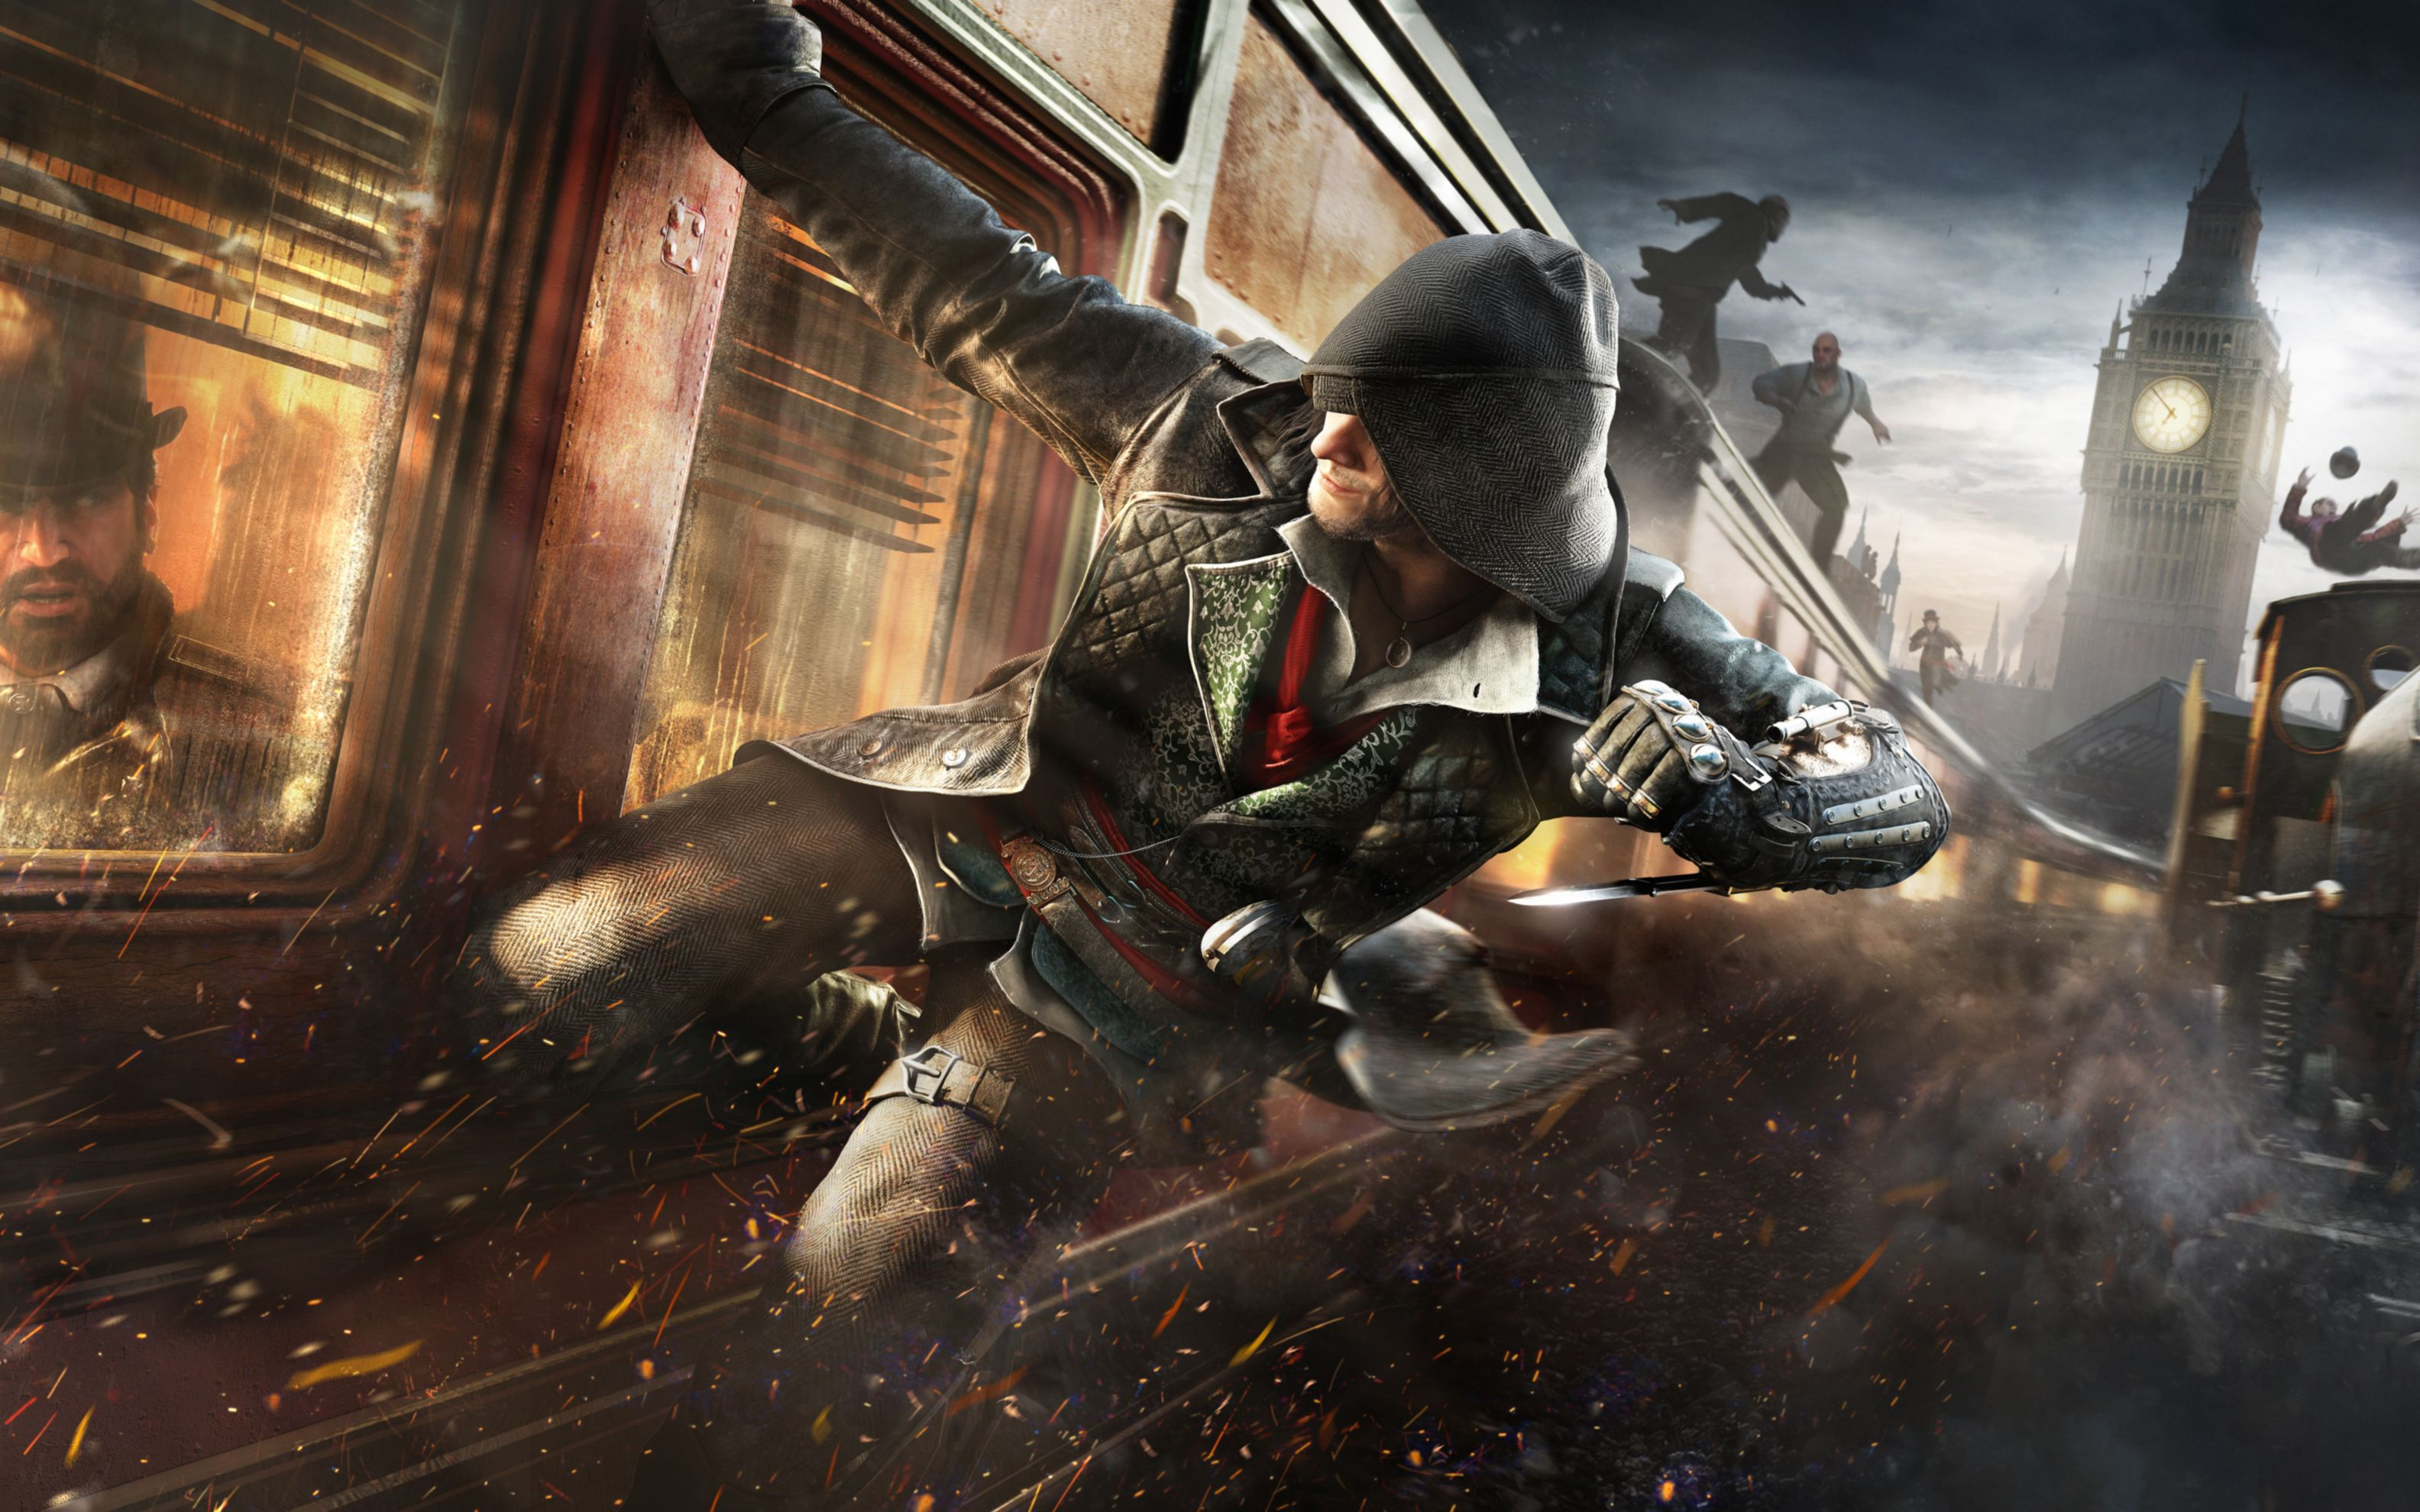 Download free HD Assassins Creed Syndicate Video Game Wide Wallpaper, image